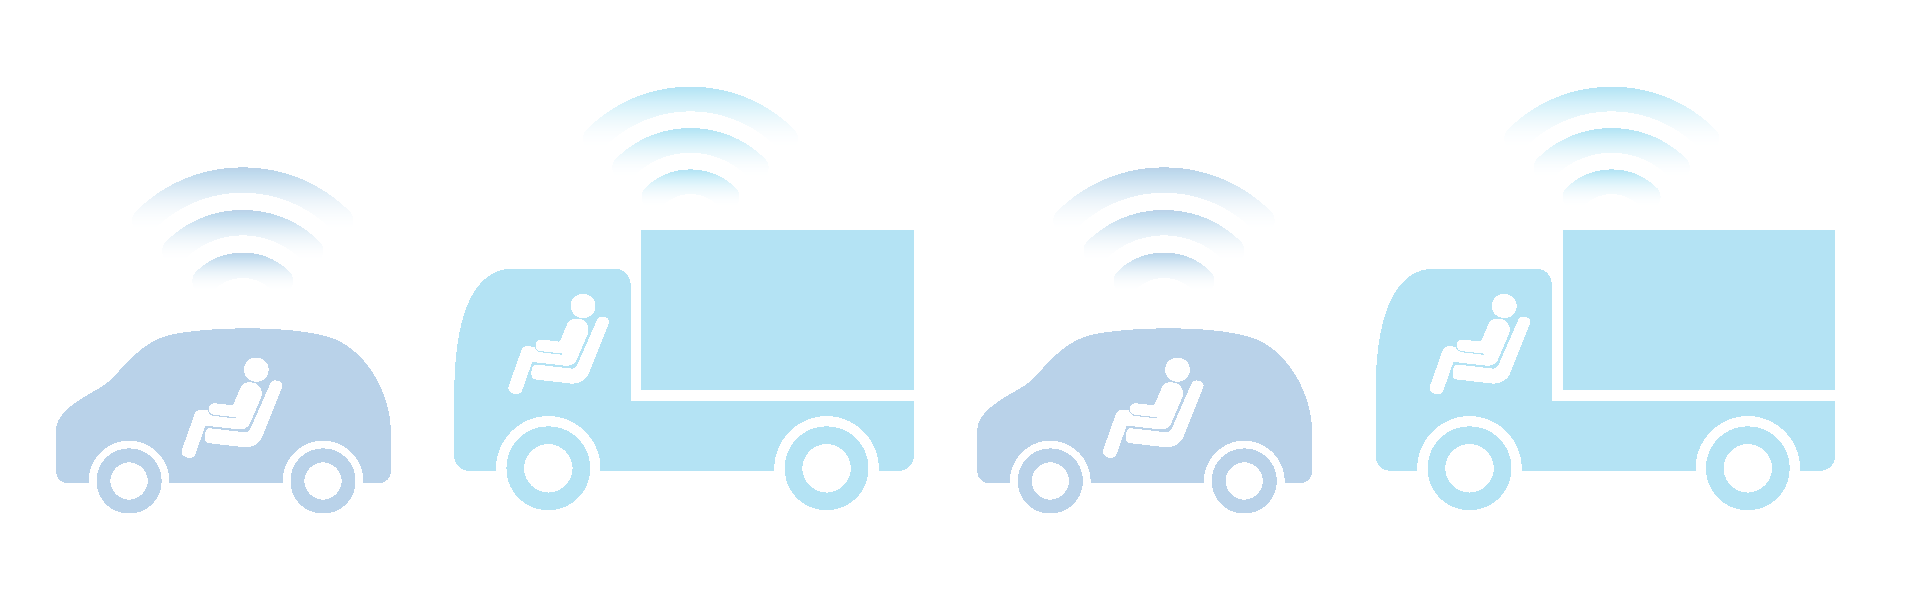 Connected and Autonomous Vehicle Technology – I-94 North